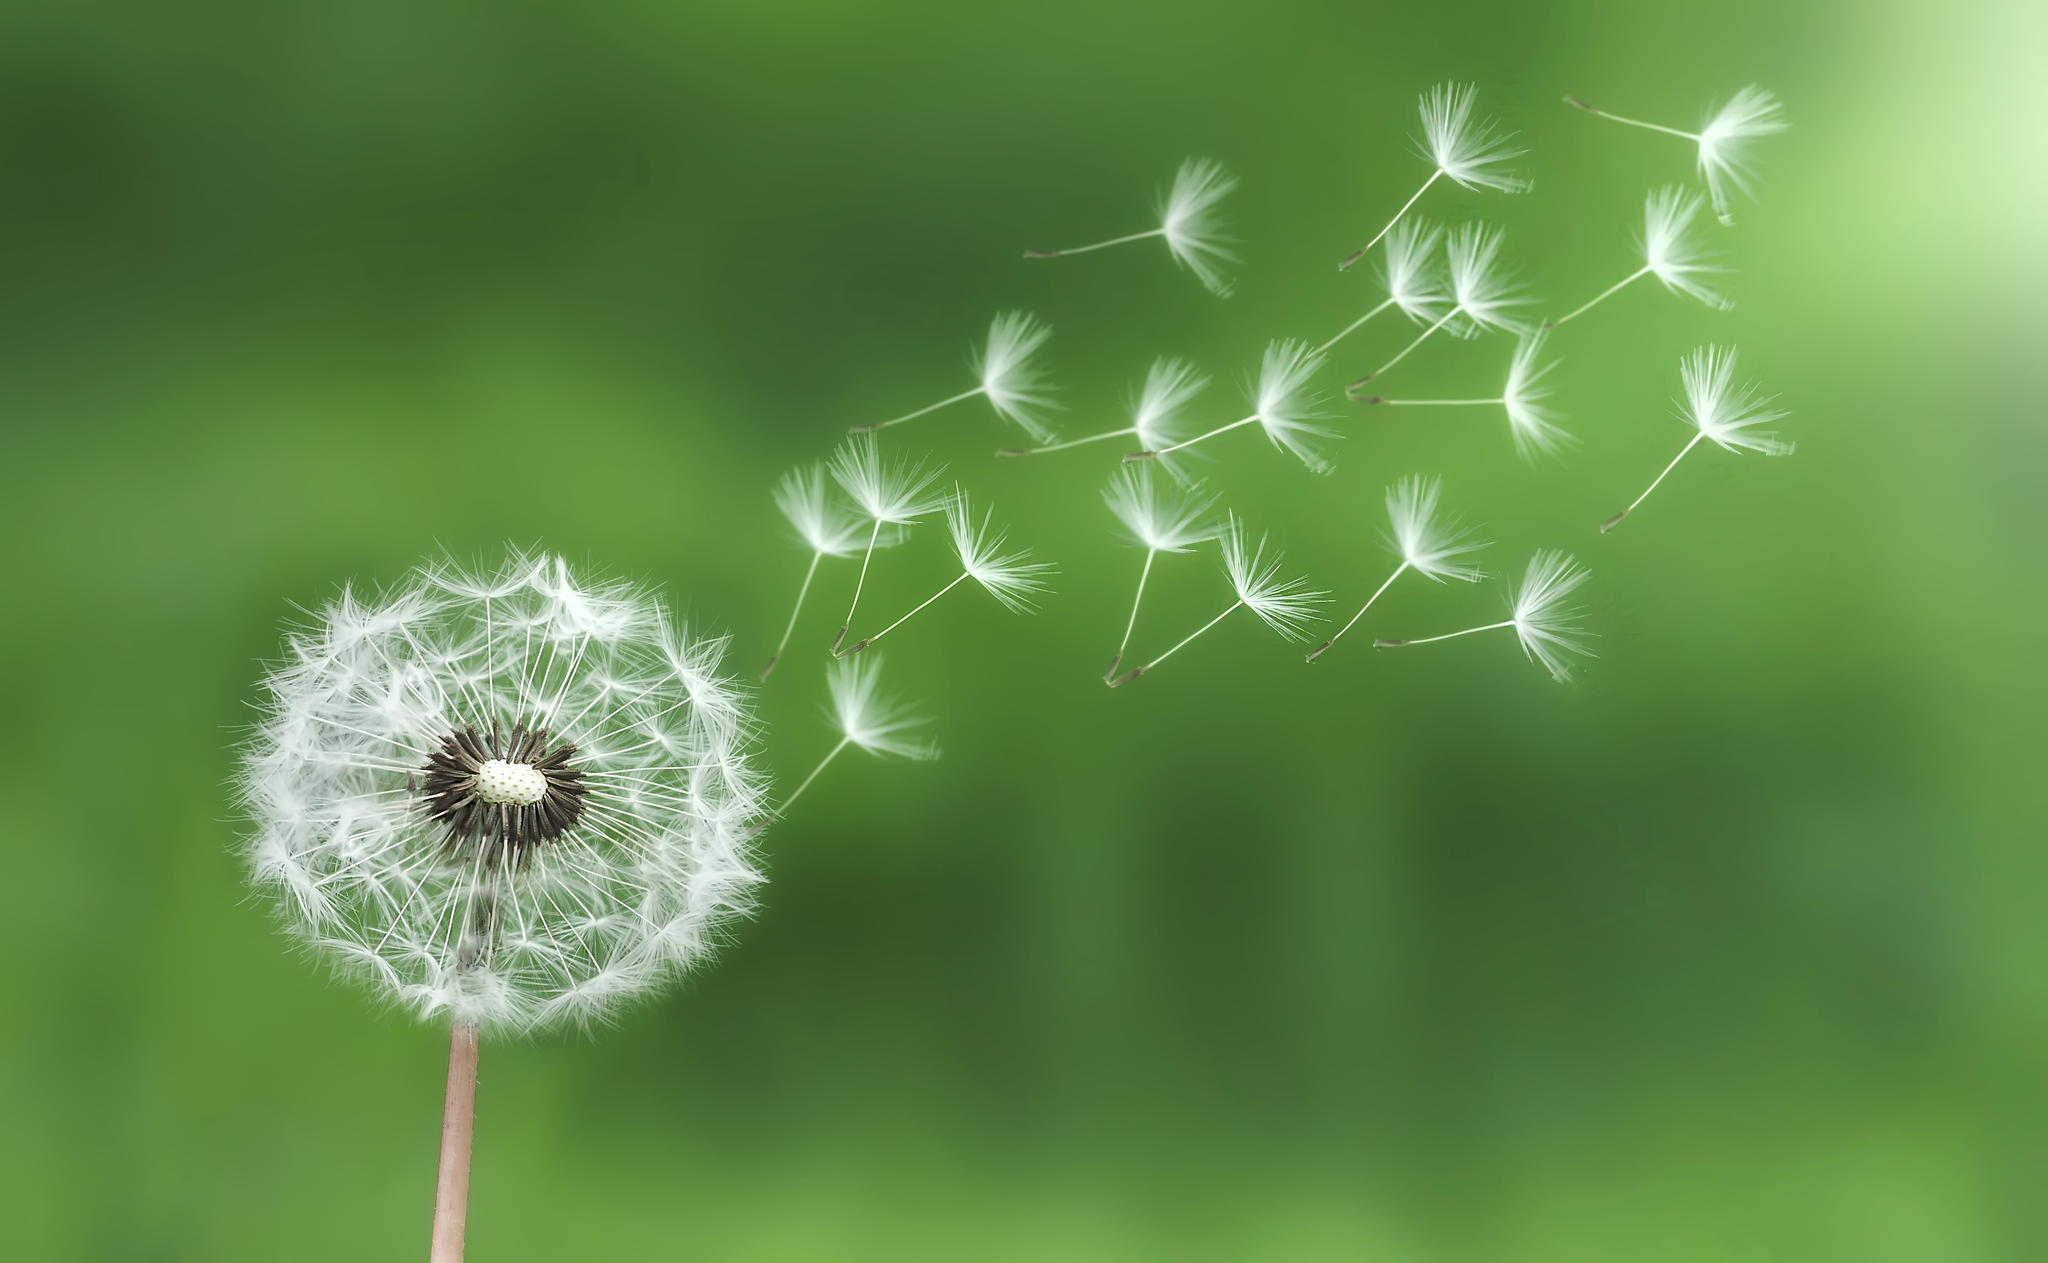 More studies on Dandelion Root Immune Boosting and Anti-Cancer ...